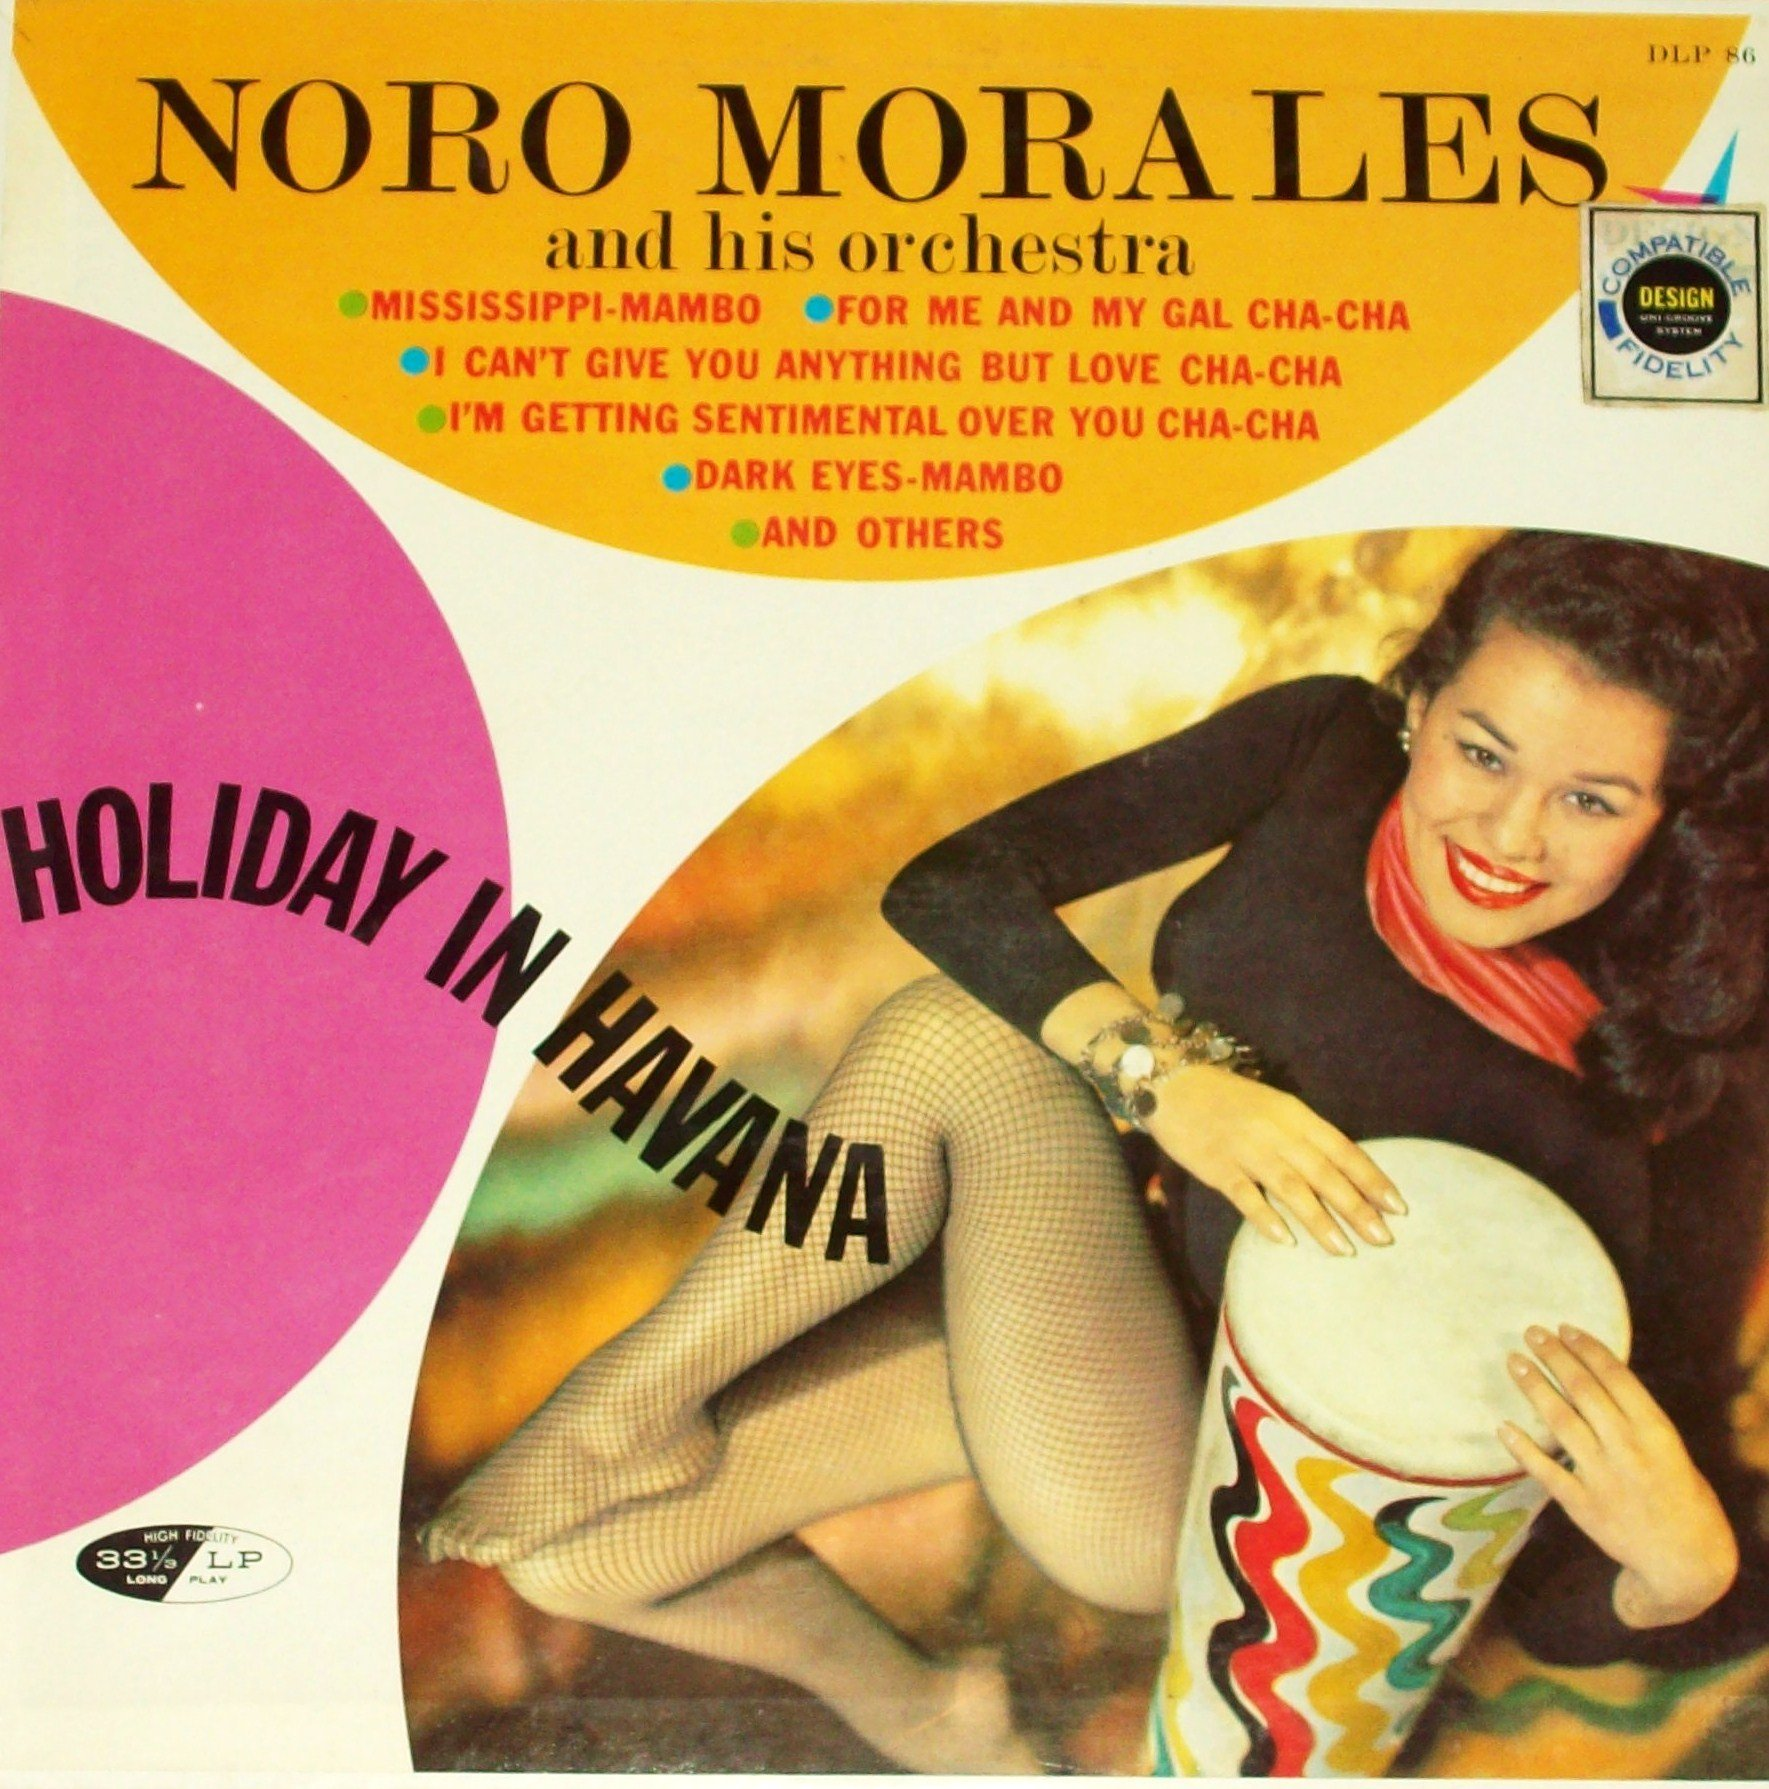 Noro Morales - Holiday In Havana - 12'' vinyl LP - Design DCF-1039 stereo - Afro-Cuban Latin jazz cheesecake by Design